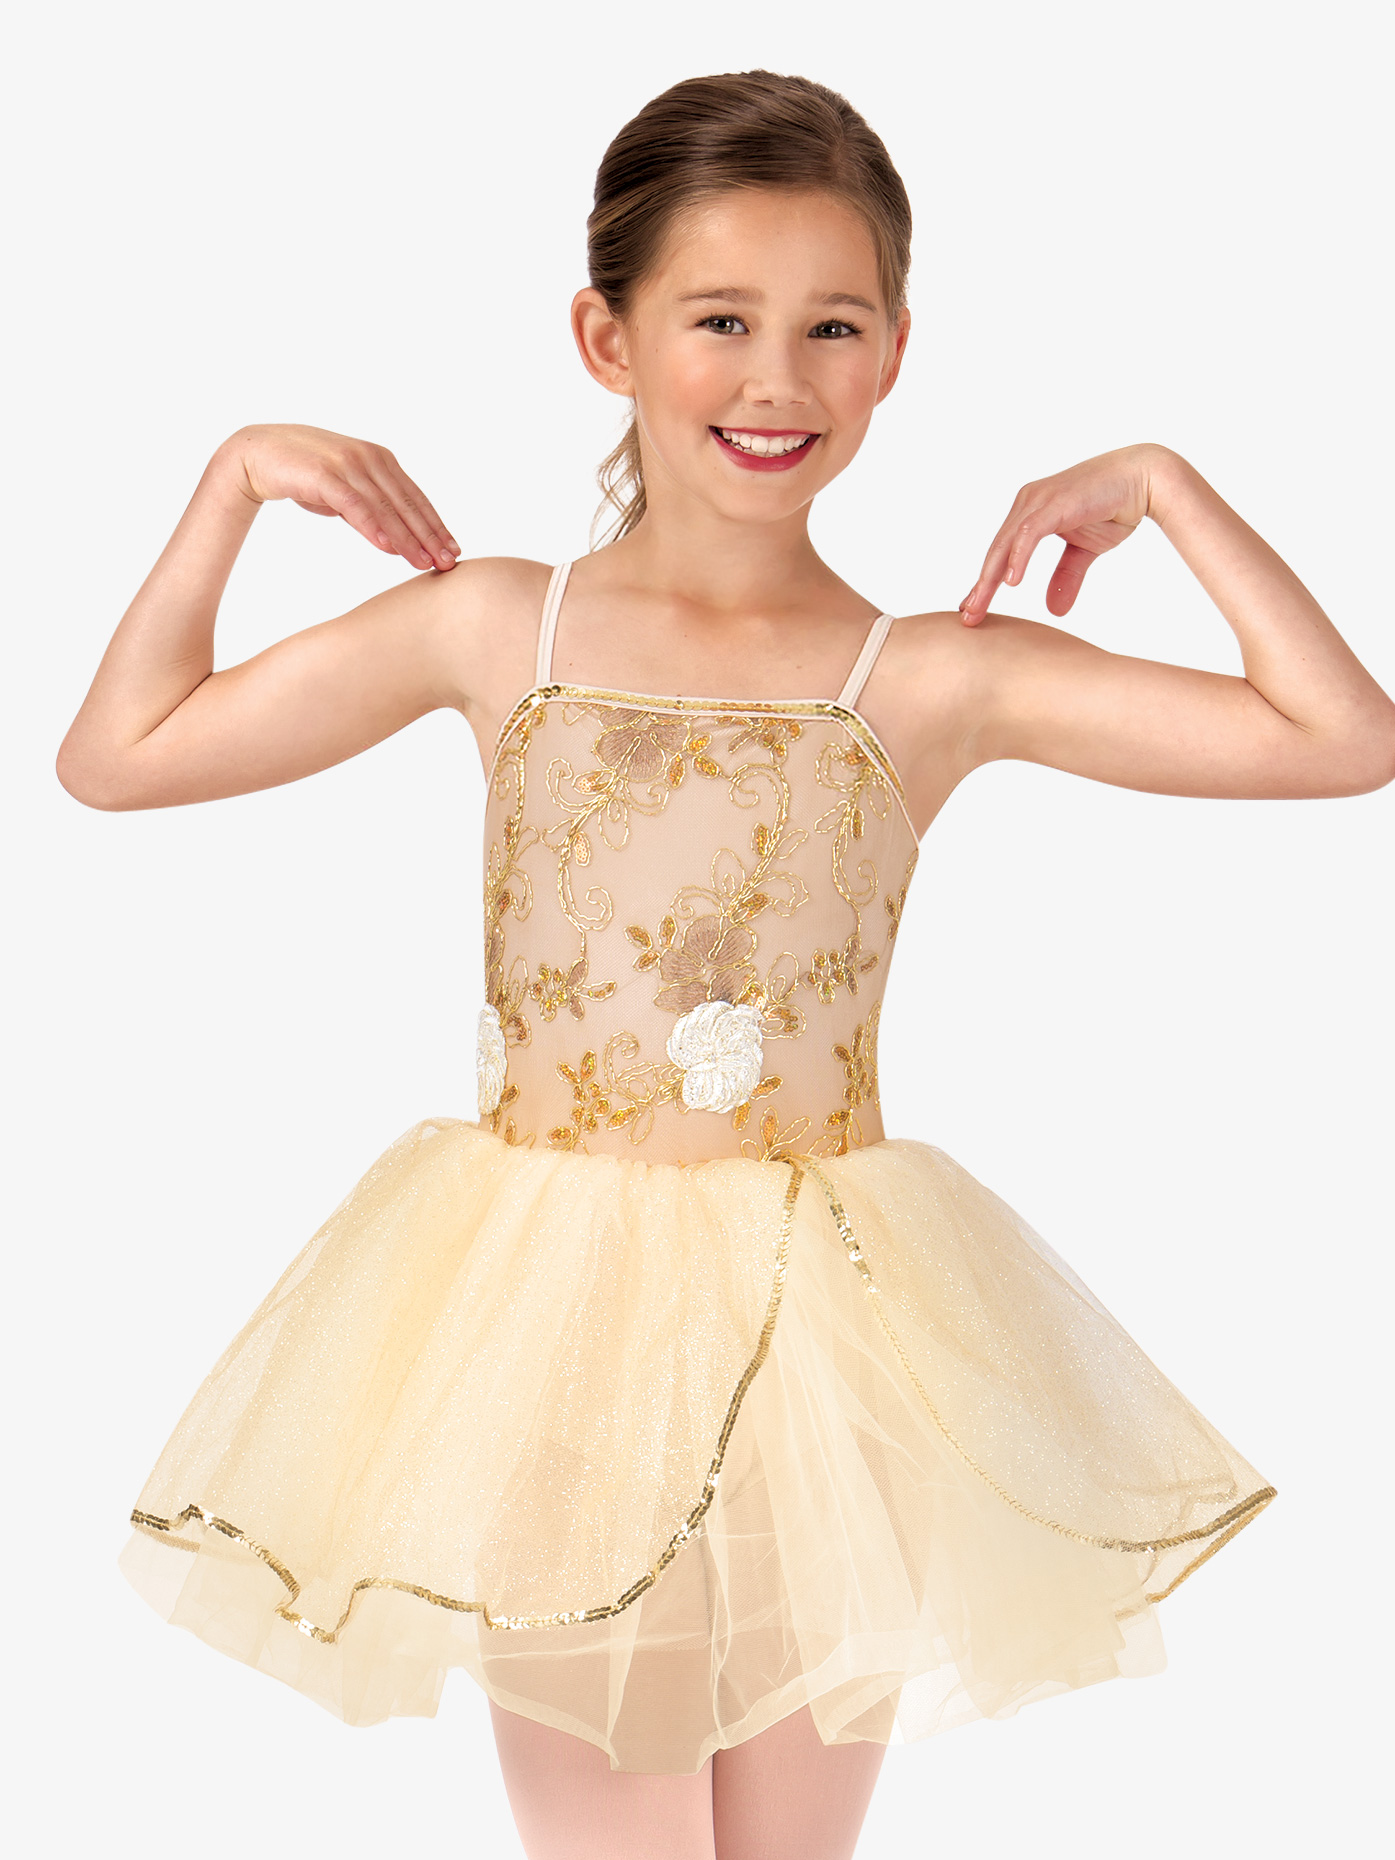 La Petite Ballerina Child Beaded Flower Camisole Tutu Costume Dress PB2013C